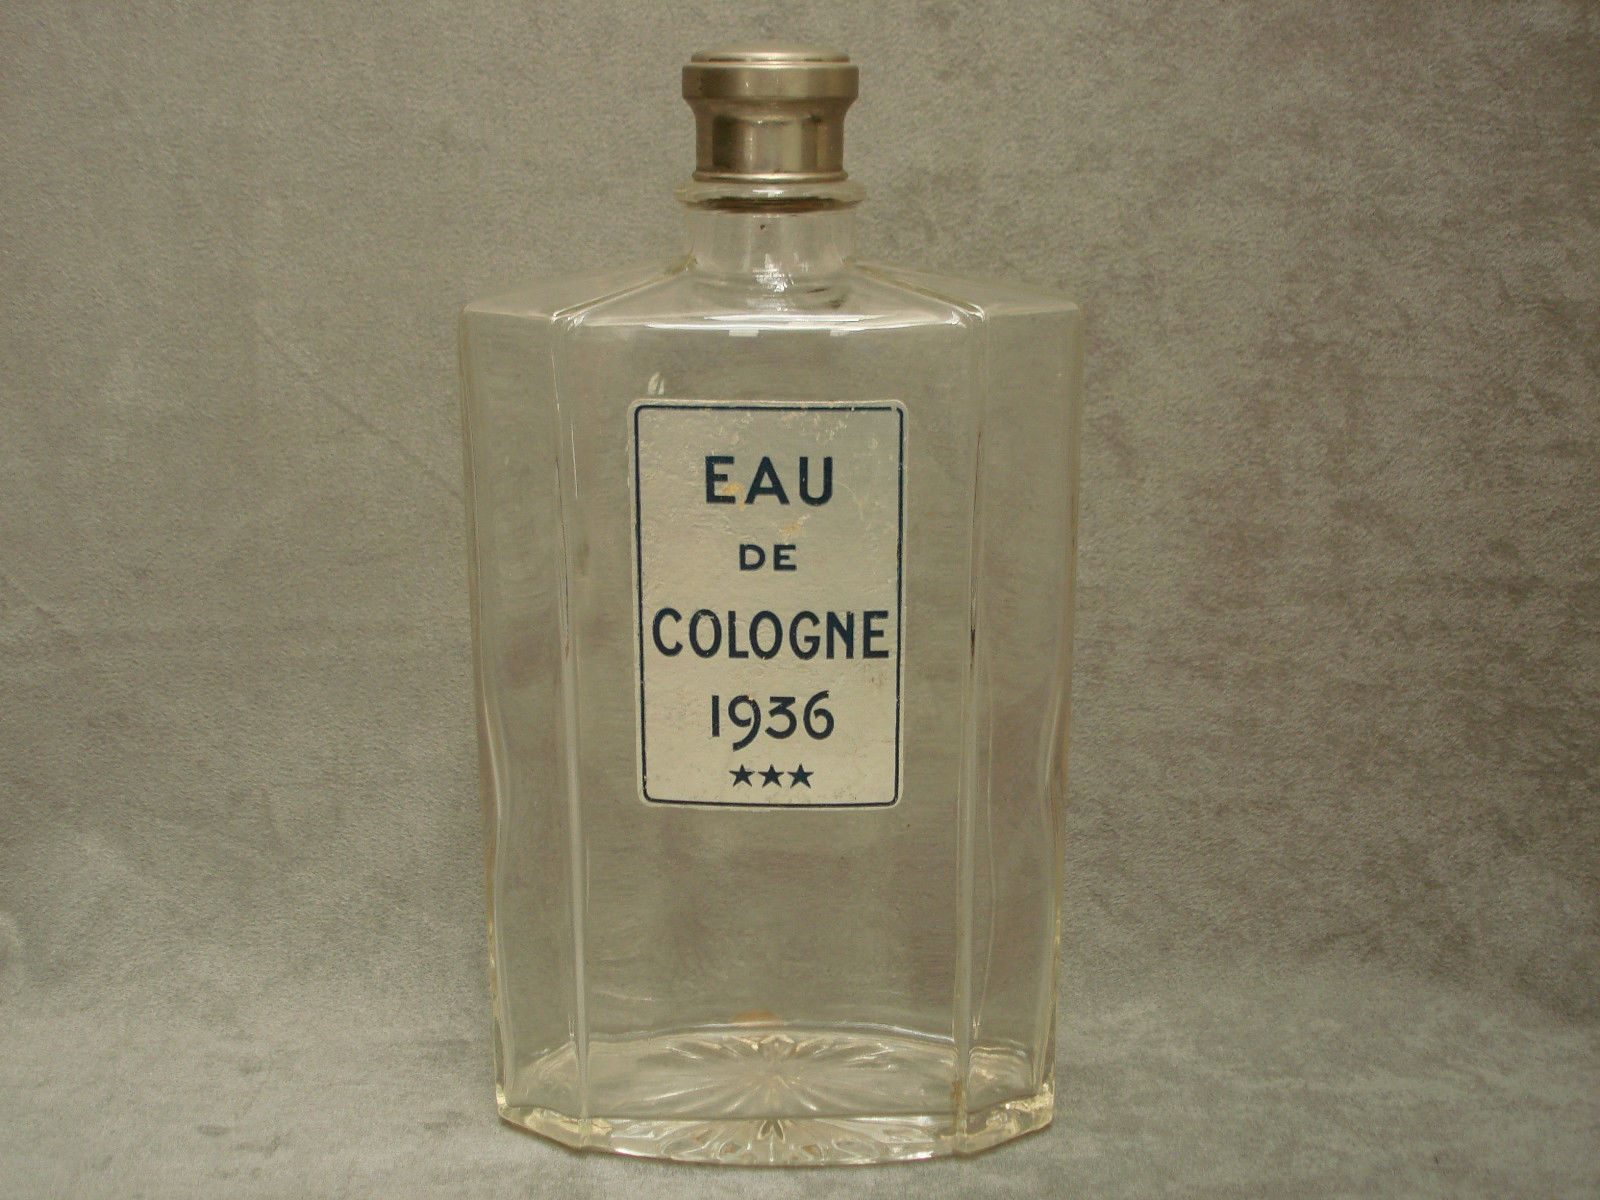 grand flacon ancien 23 5 cm 1936 eau de cologne parfum vintage ebay objets vendus. Black Bedroom Furniture Sets. Home Design Ideas